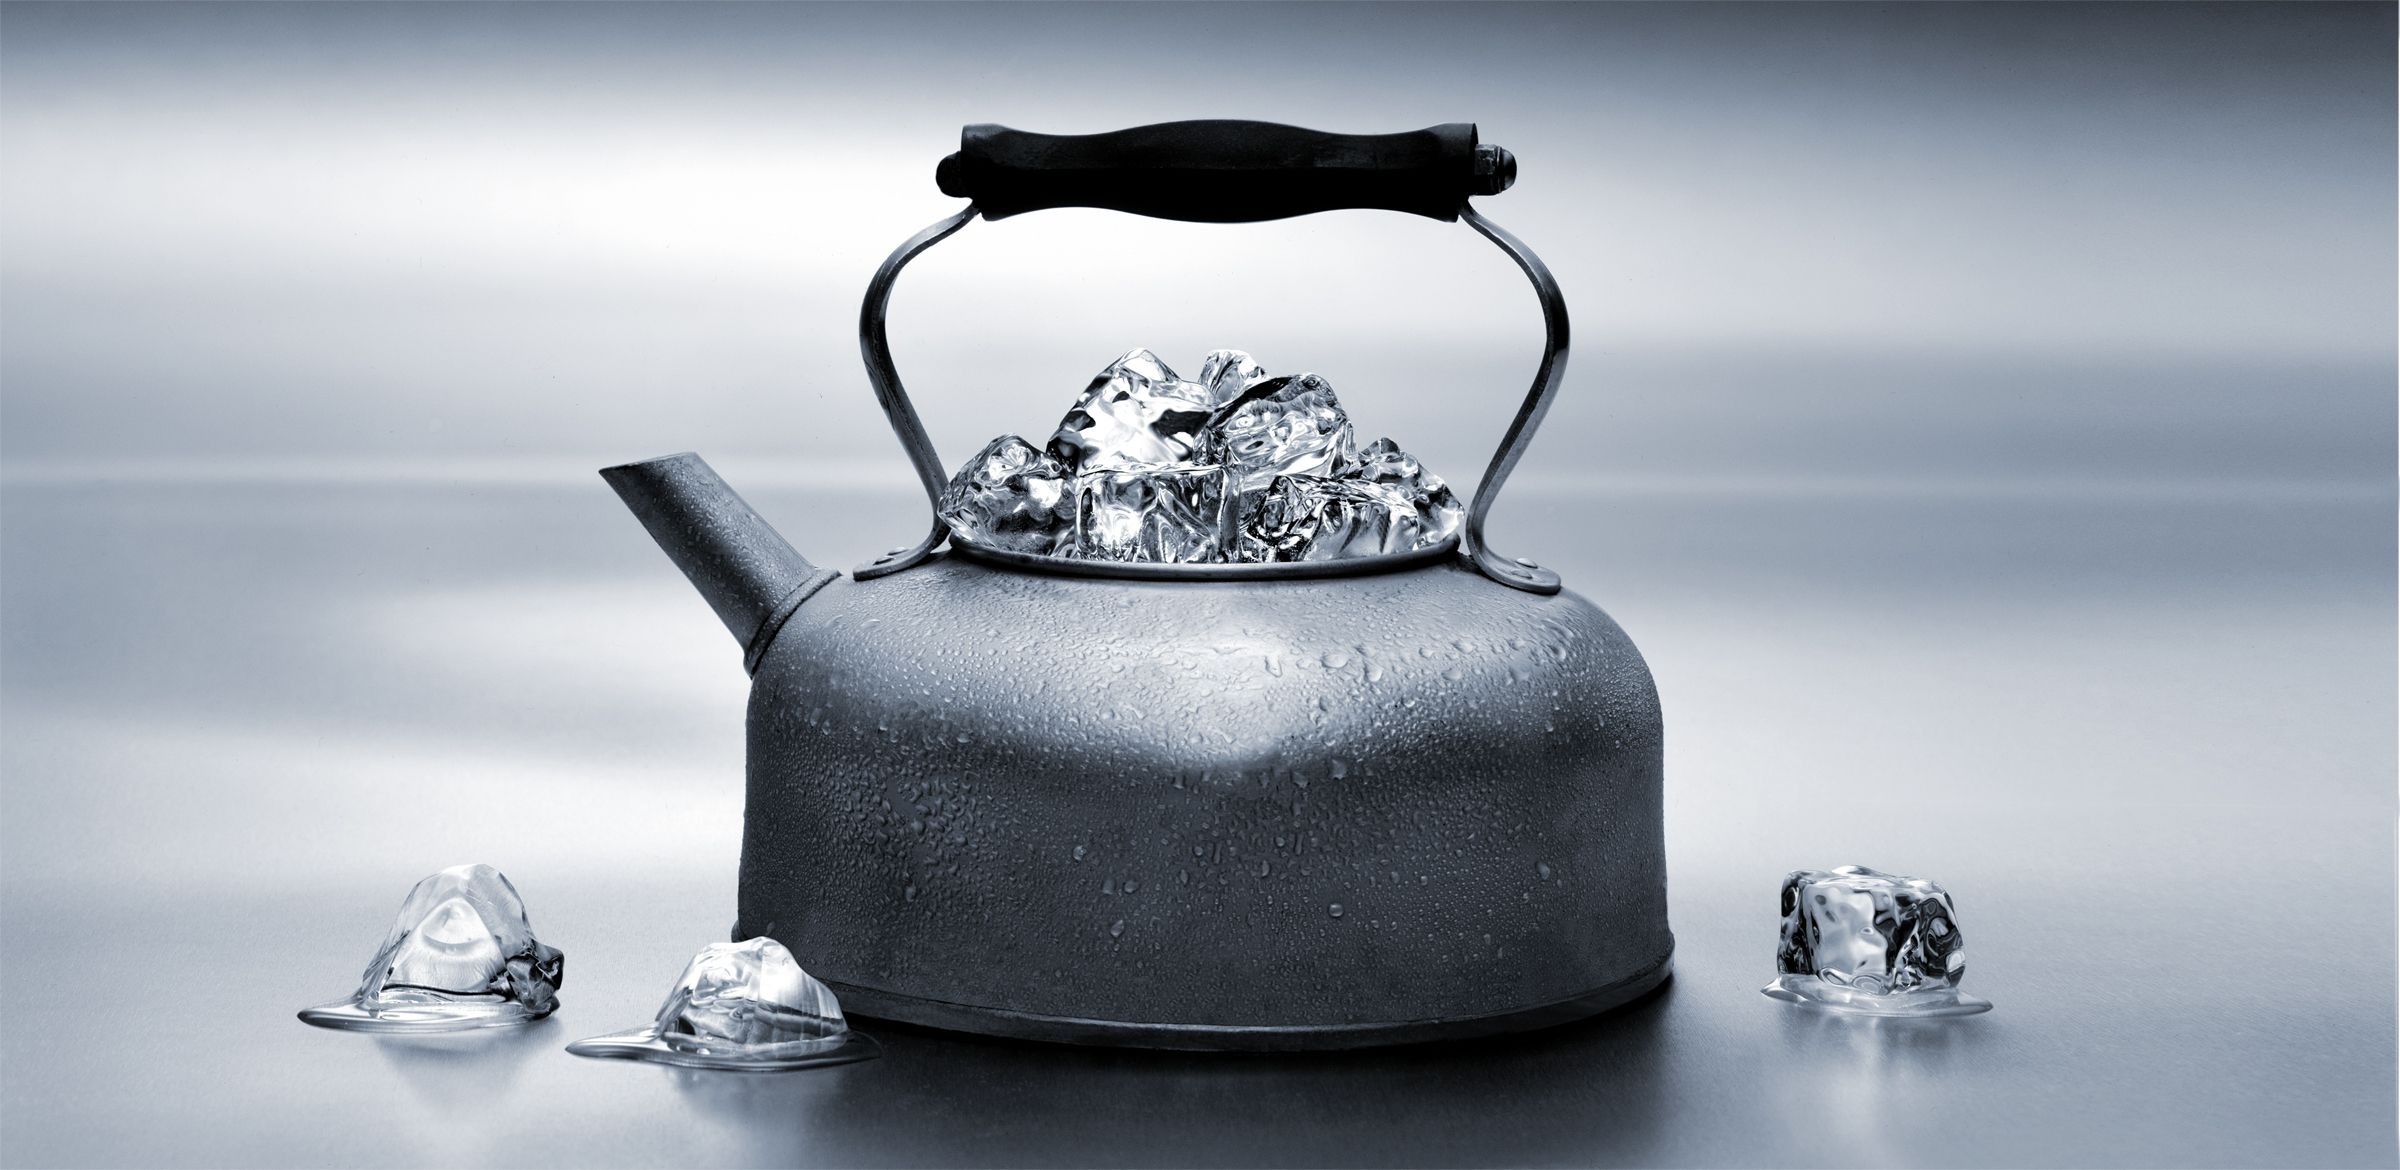 Teapot by Paul Bussell